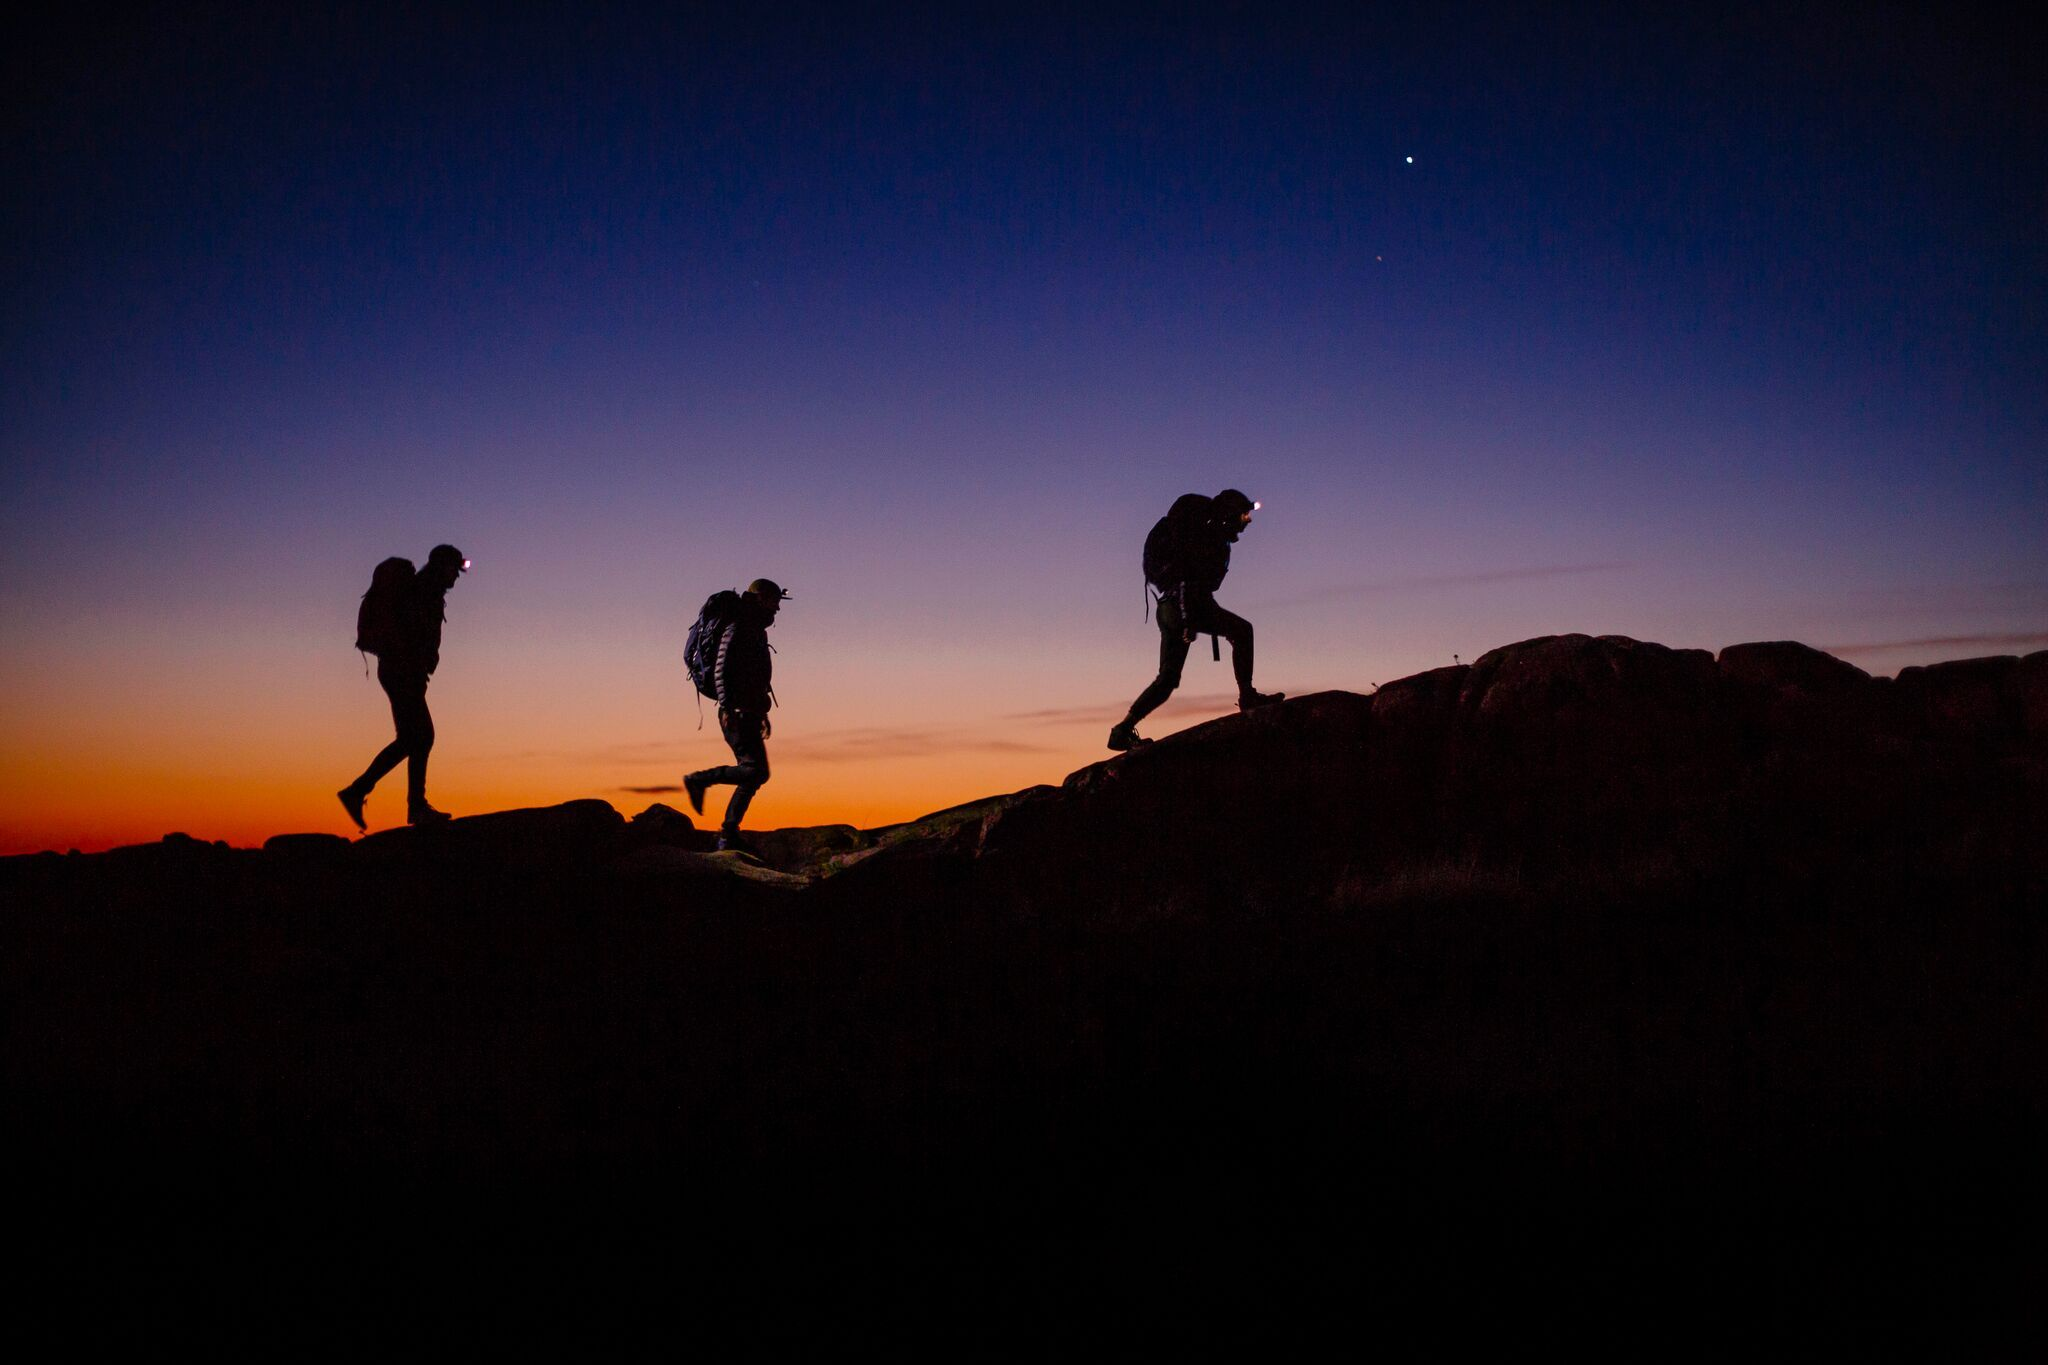 3 night hiking silhouettes at sunset